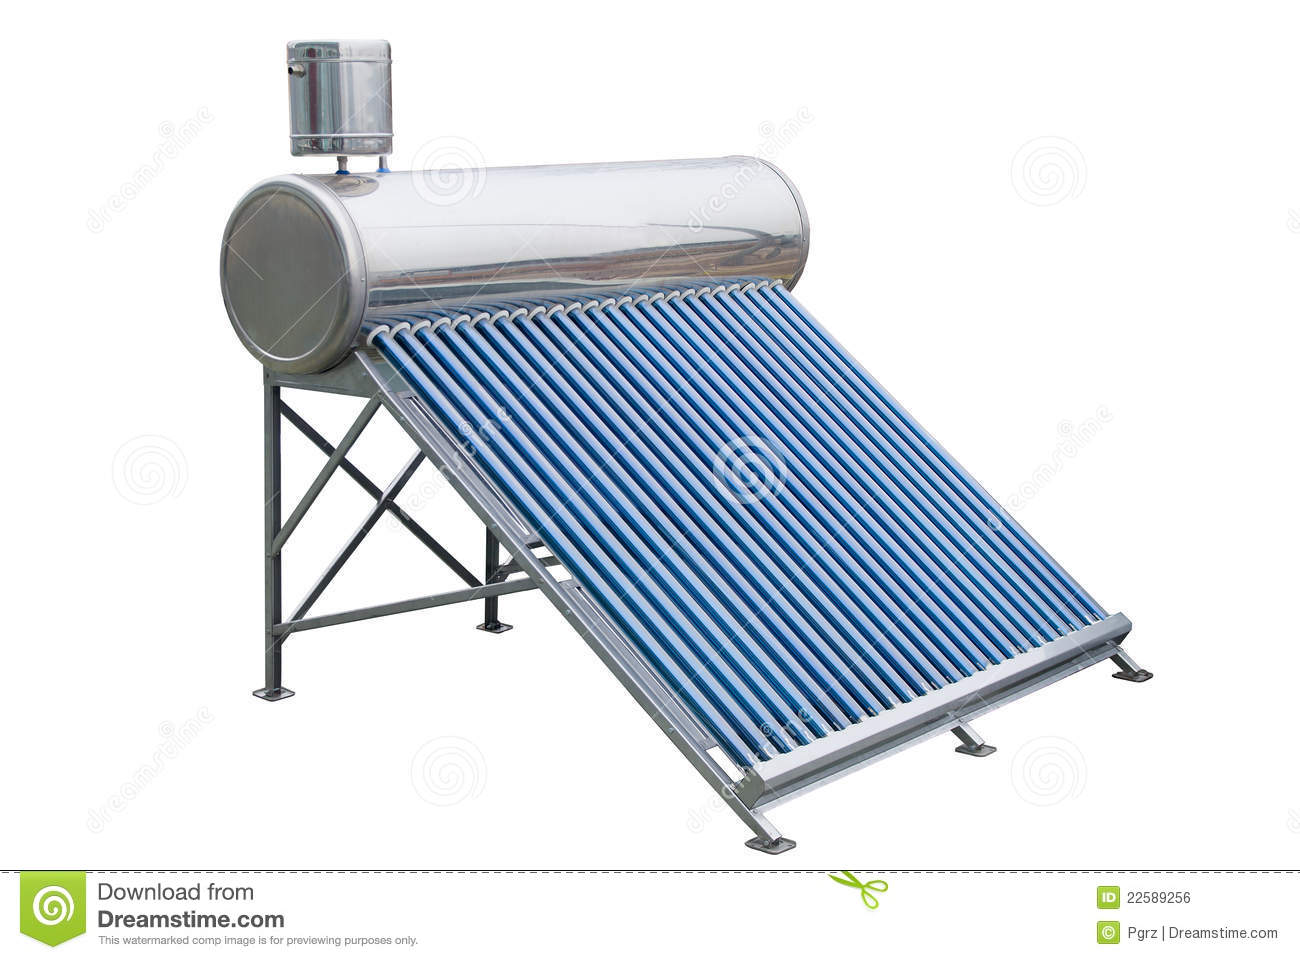 Solar Panels For Hot Water Royalty Free Stock Image - Image: 22589256